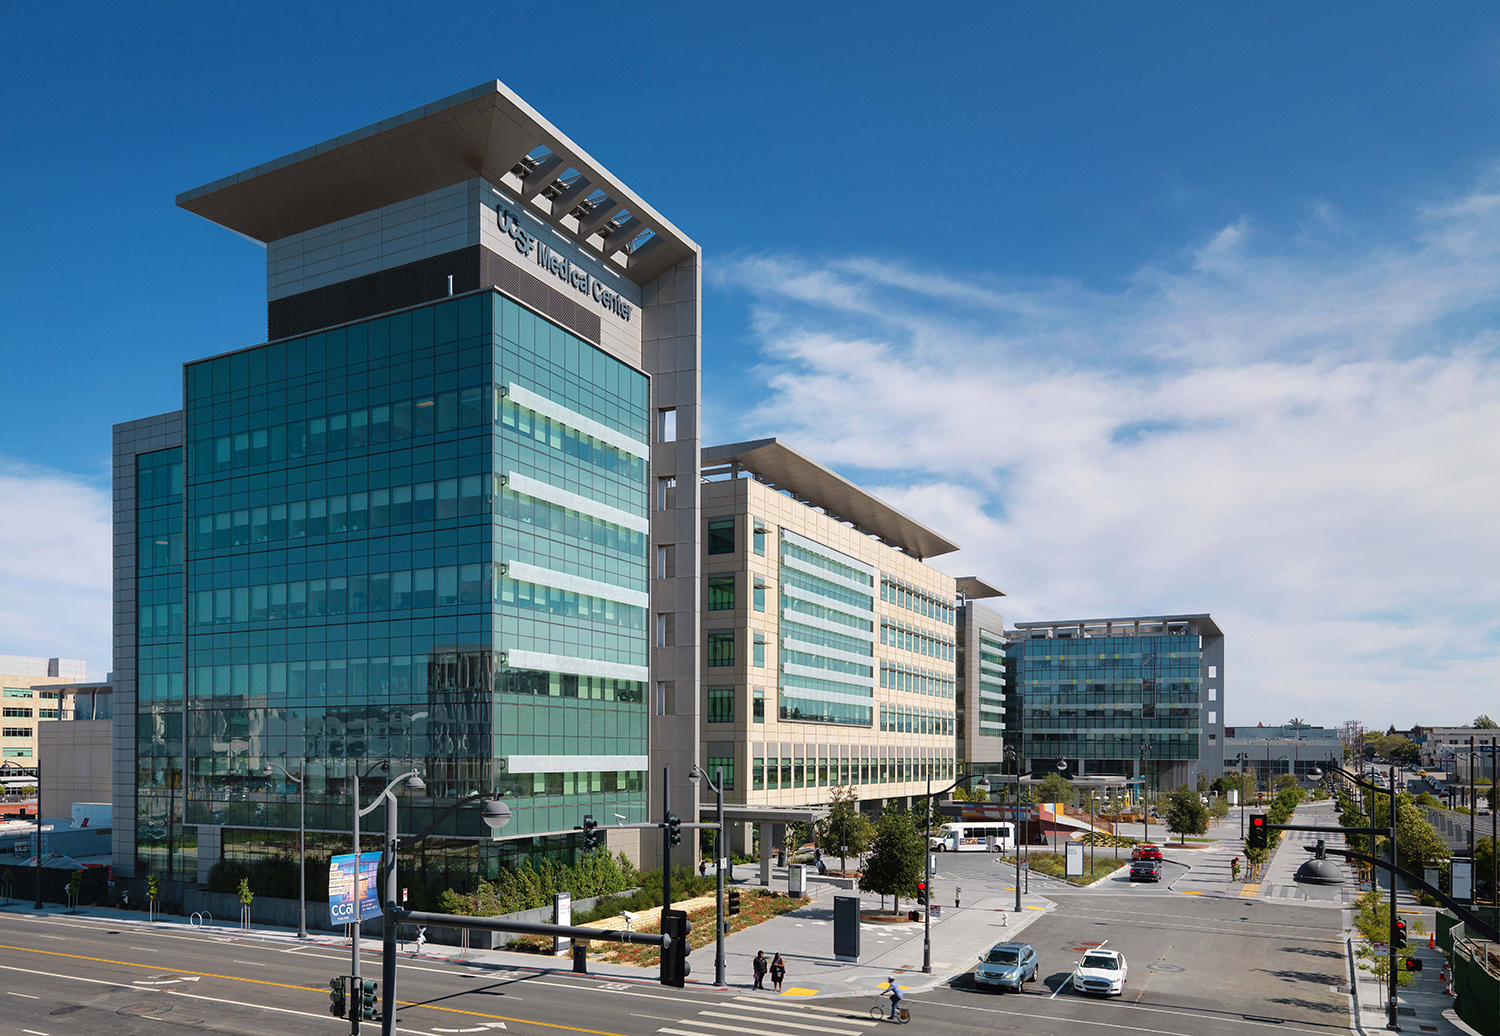 ucsf-medical-center-exterior-hospital.jpg#asset:75366